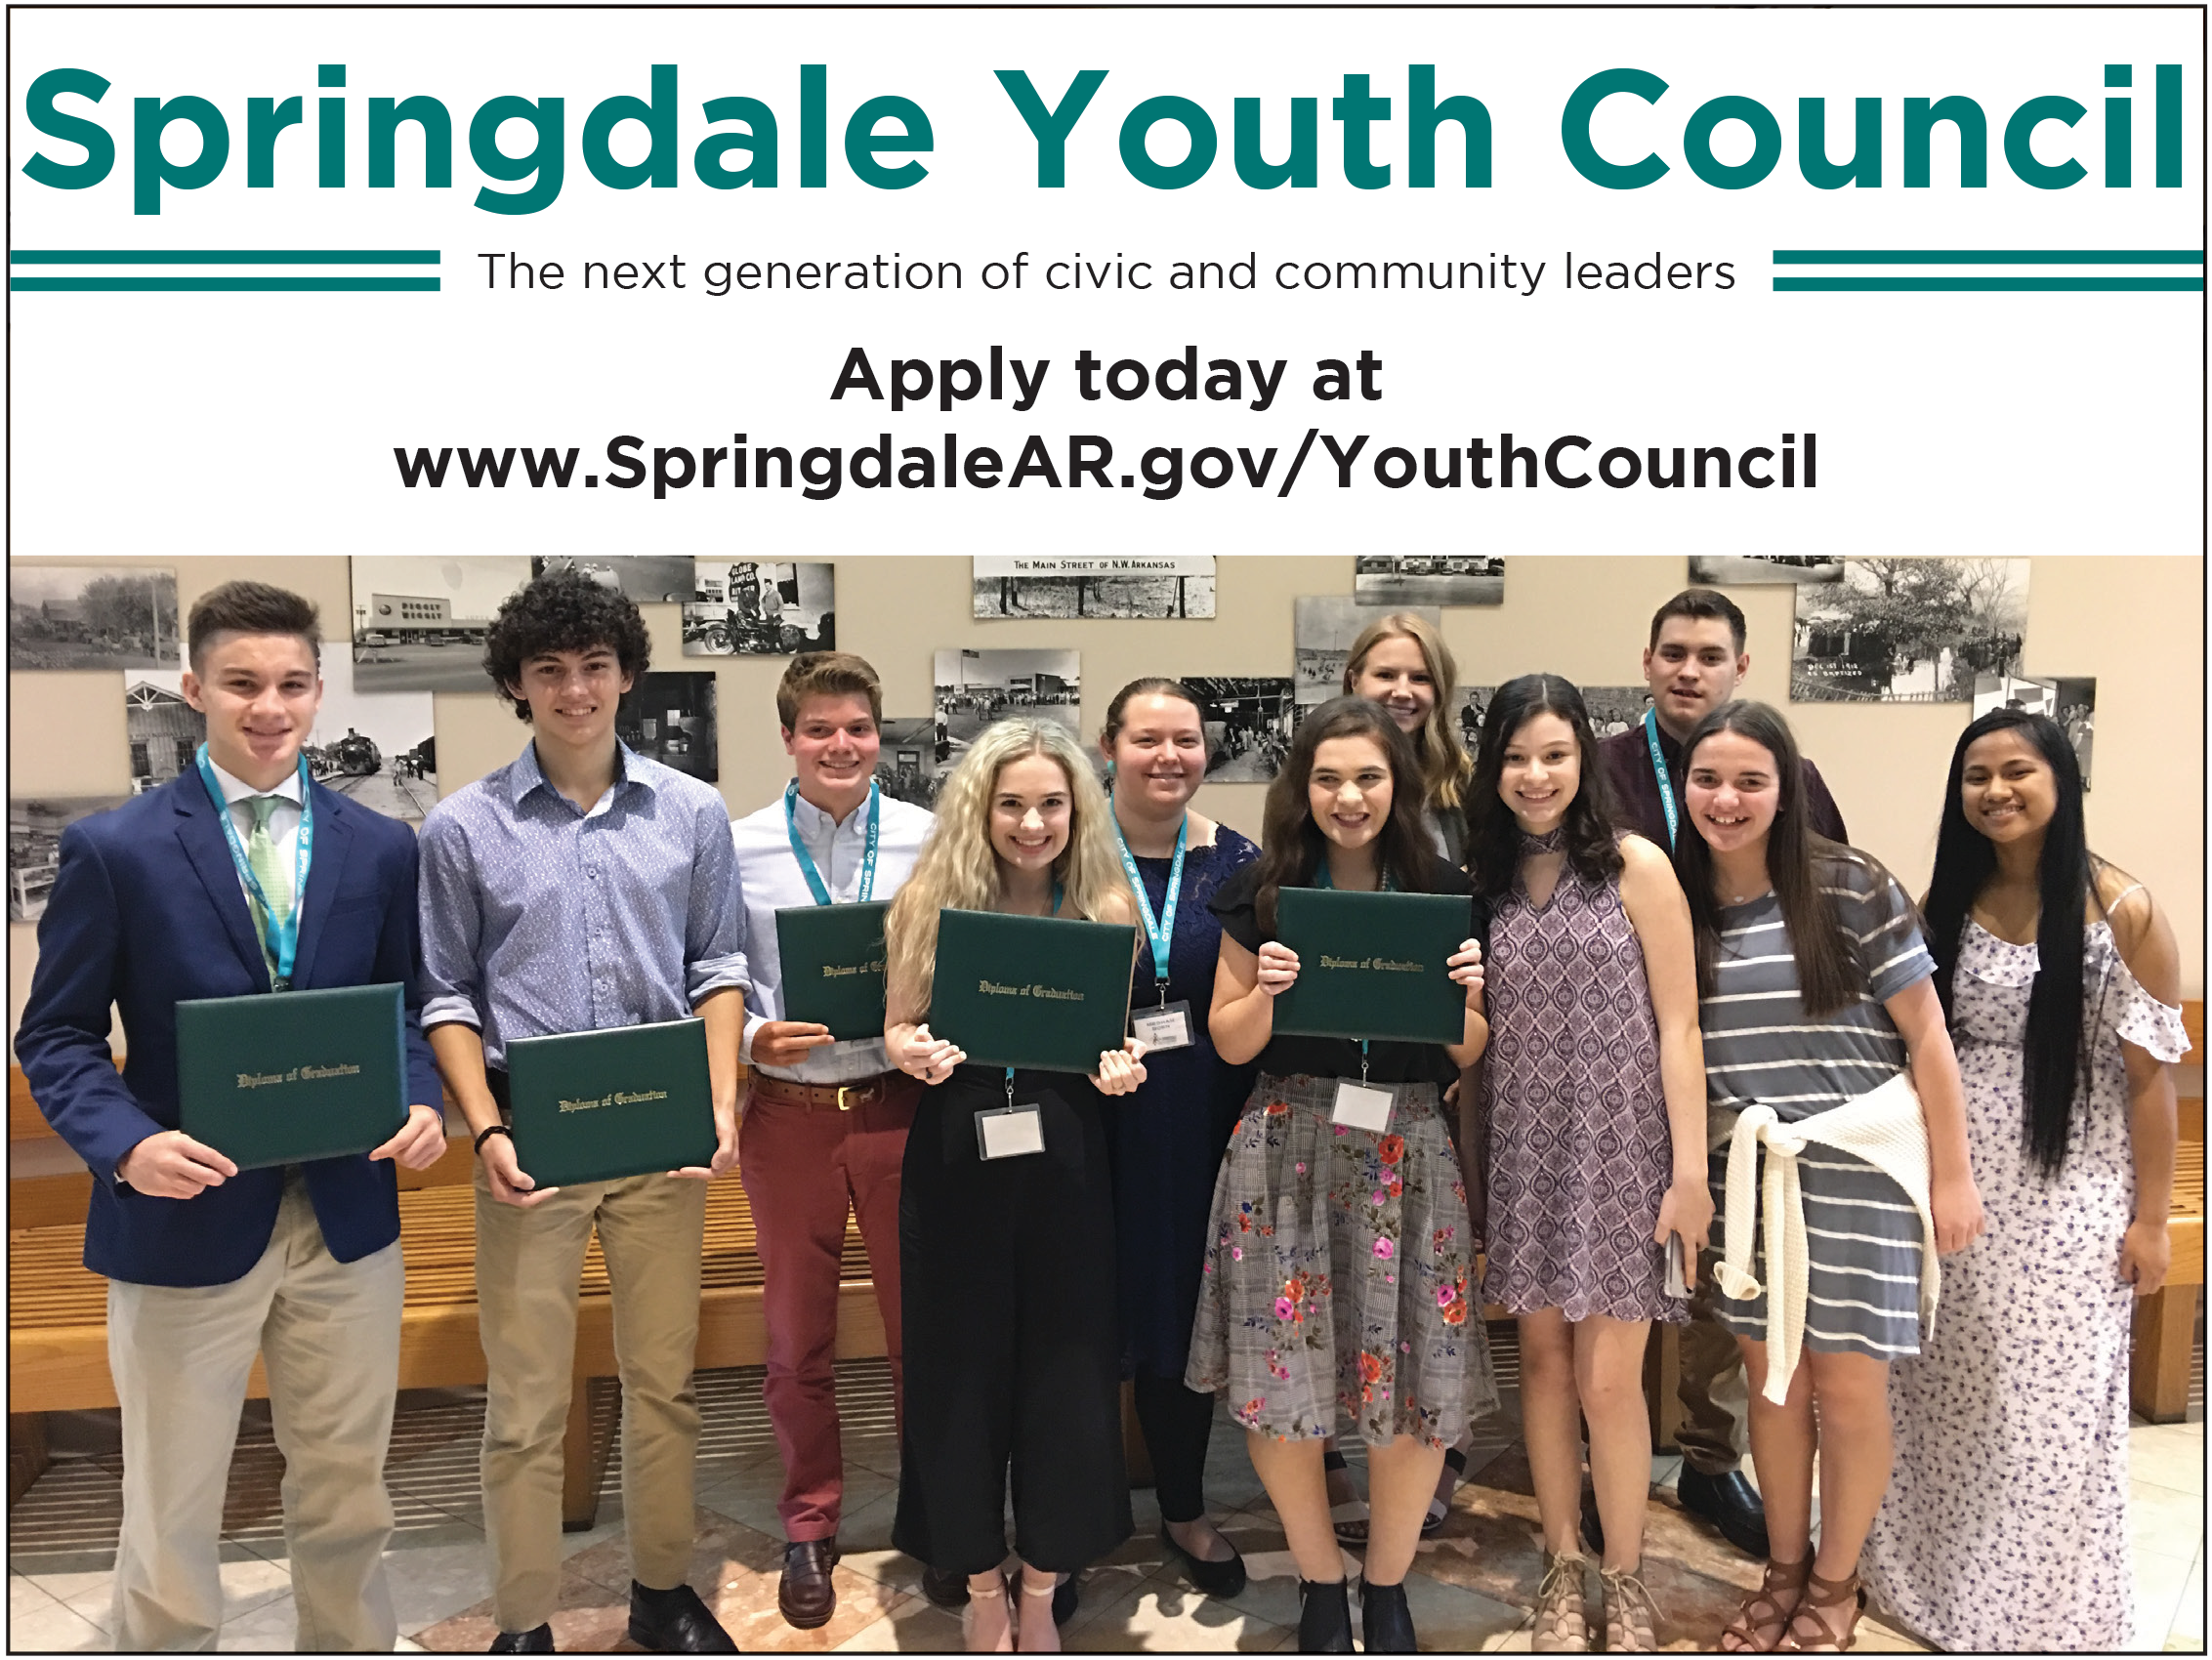 Youth Council 2019 Image